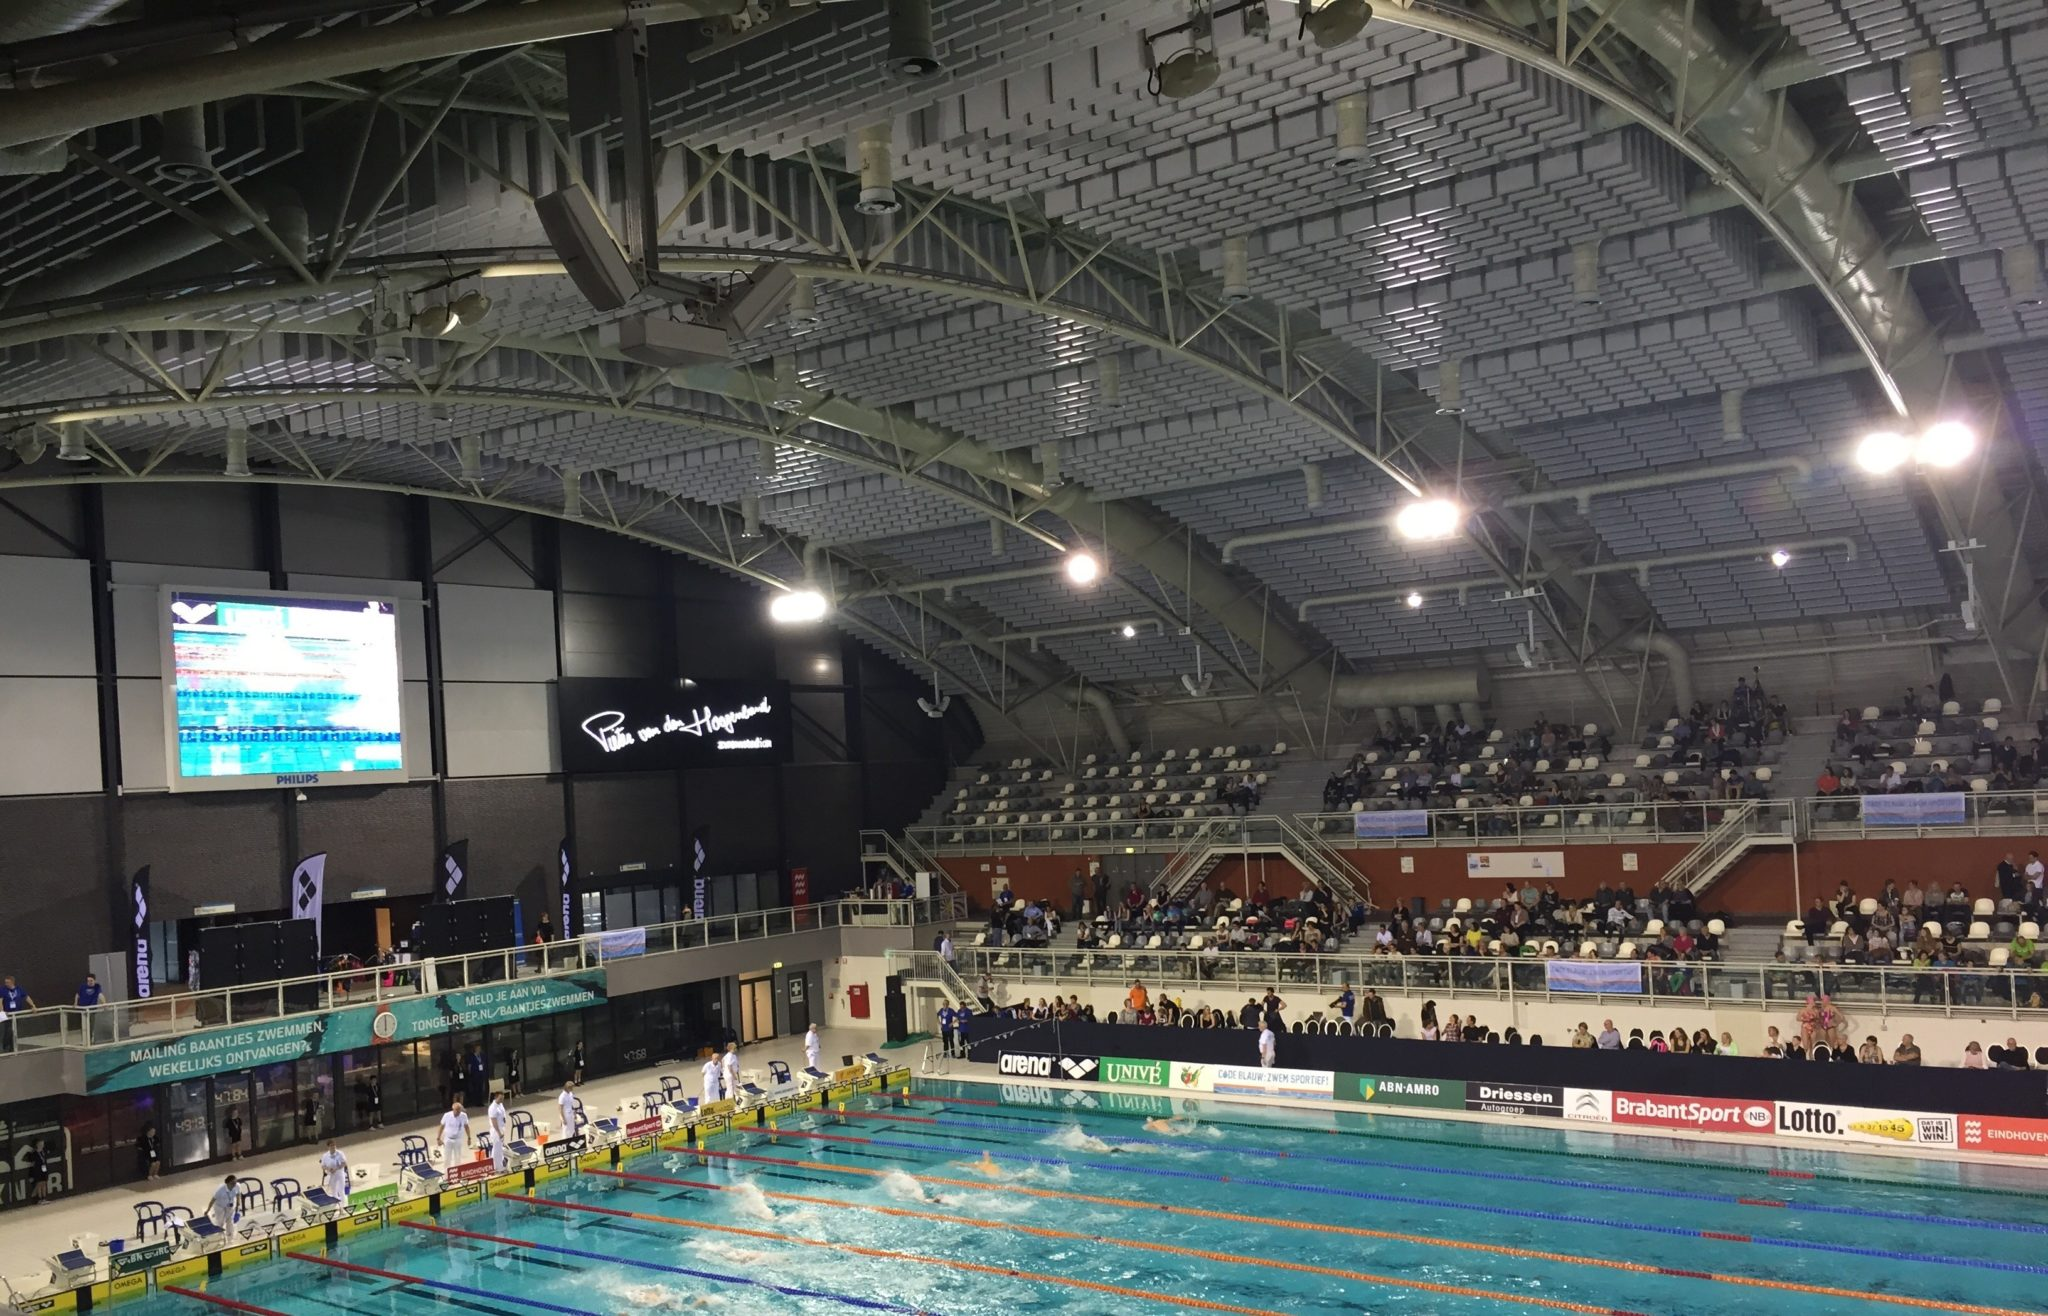 Germany To Attend Swim Cup Eindhoven With Many National Team Members